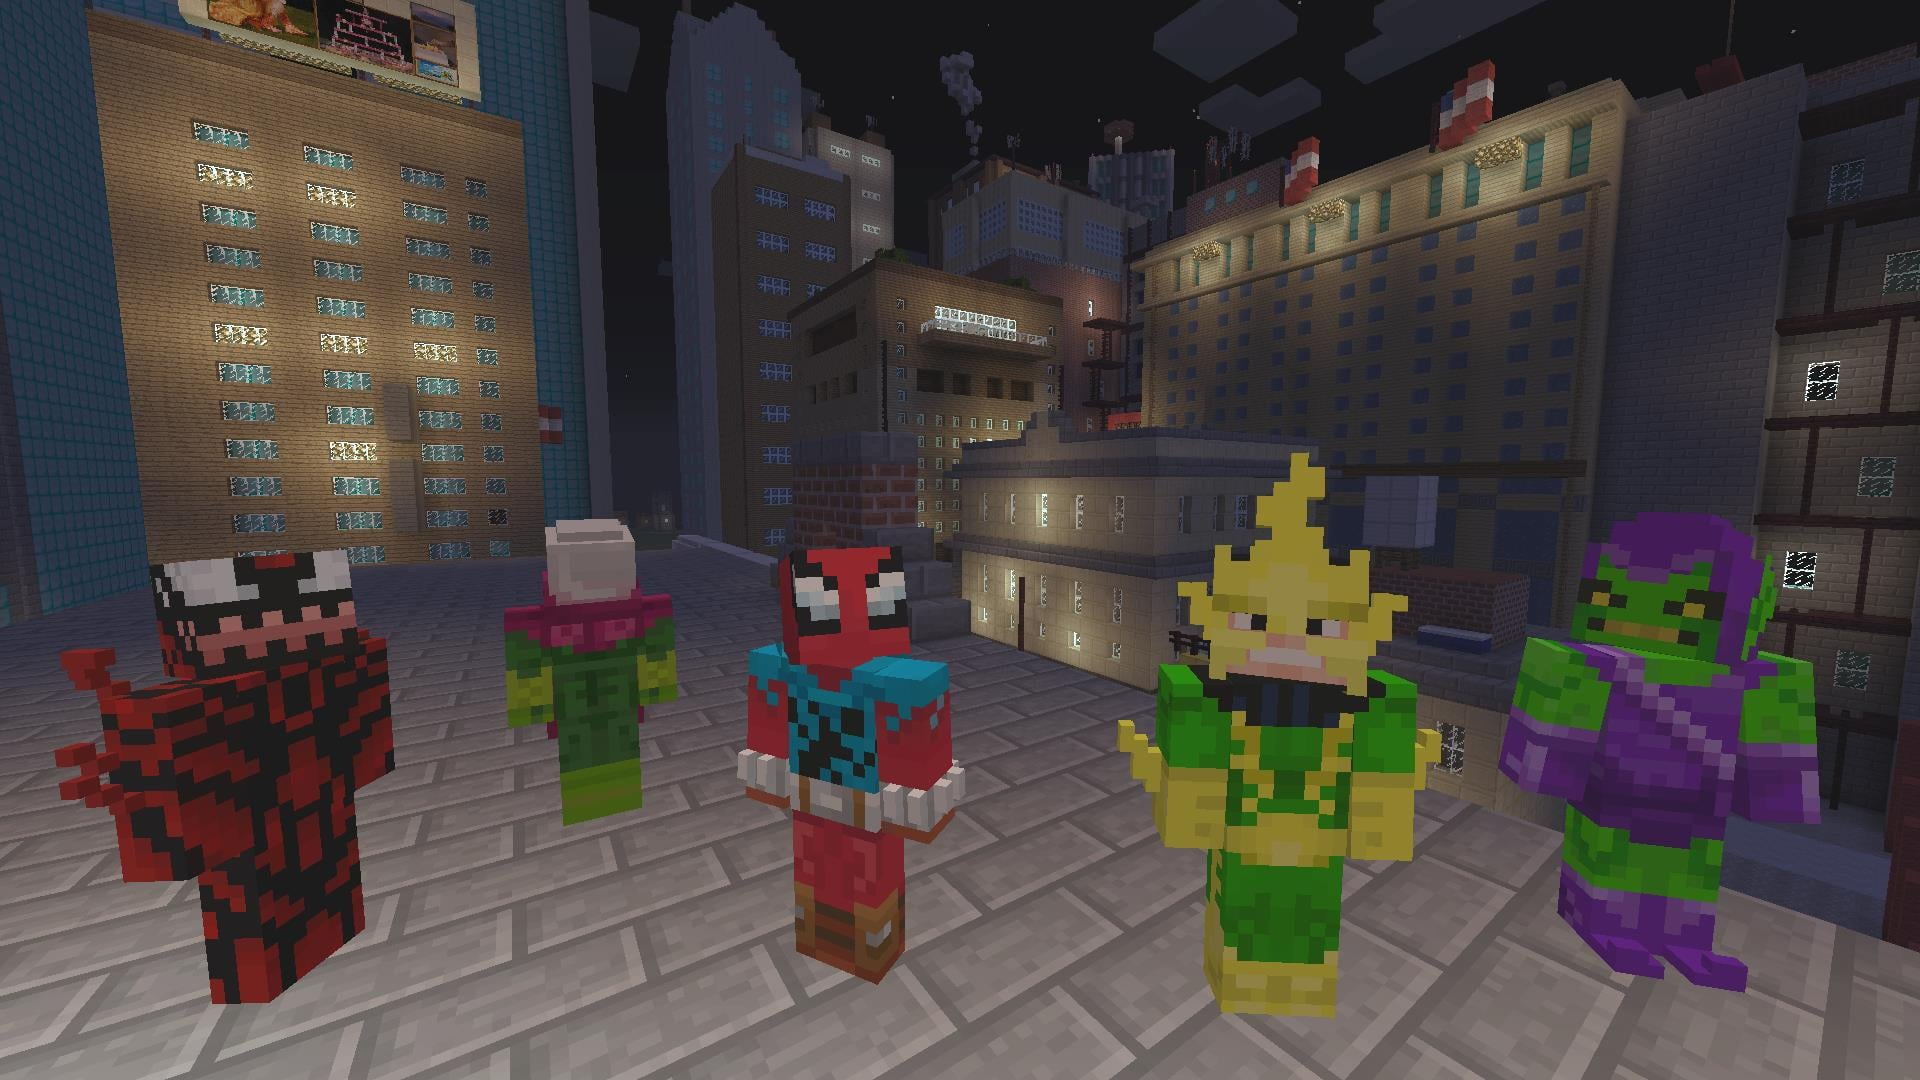 Minecraft Releases New Title Update for Console Editions